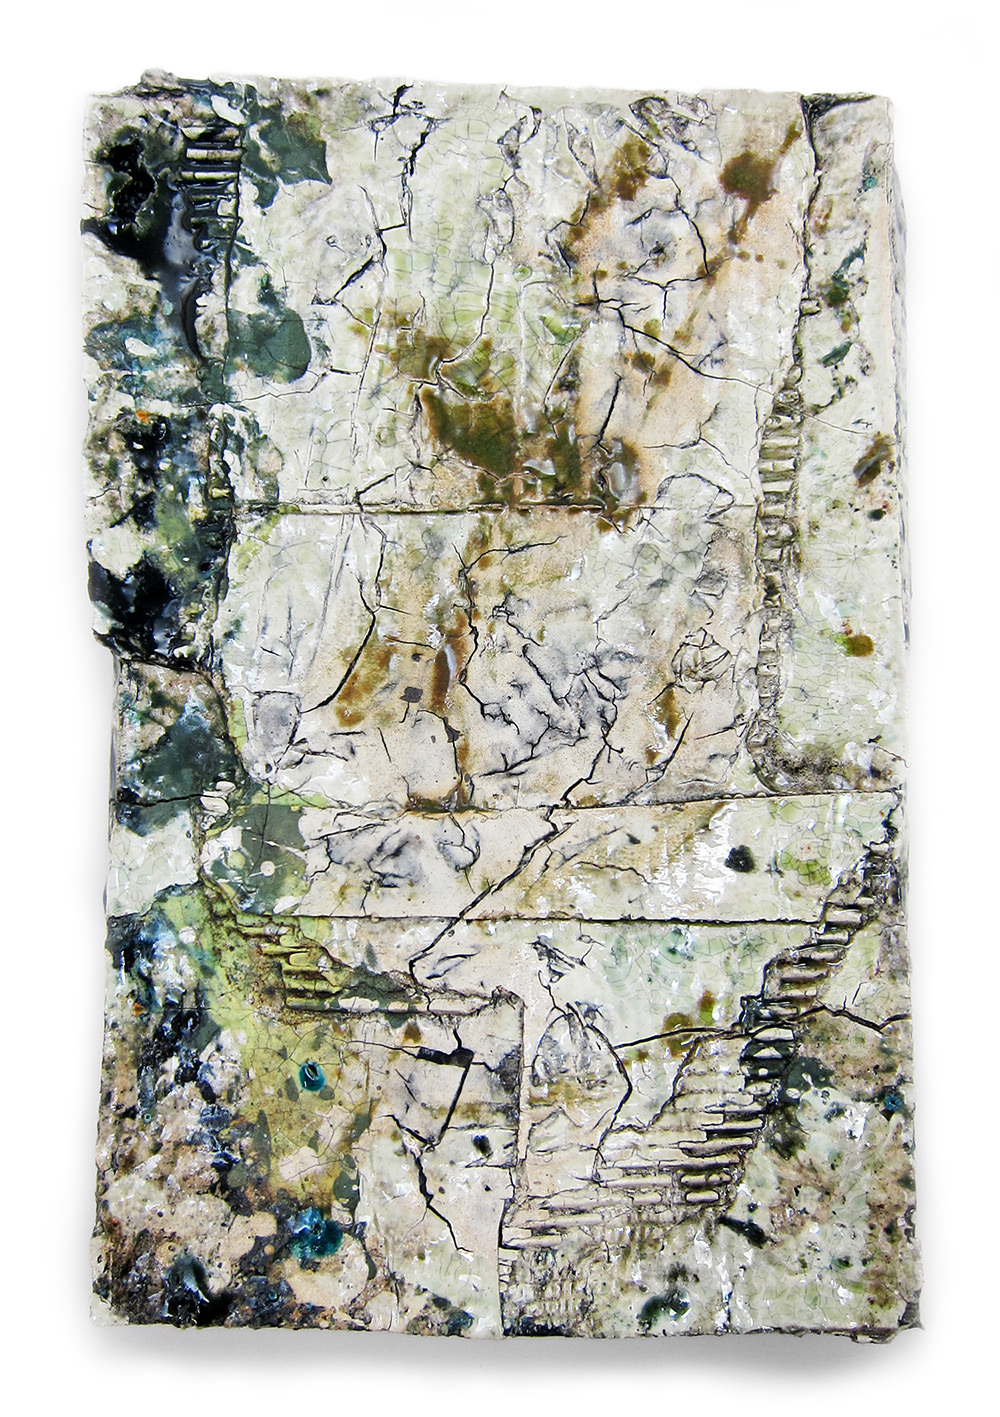 "<em>Reclaim Slab No.14</em> <span style=""color:#CC0000;font-size:1.5em;"">•</span>"